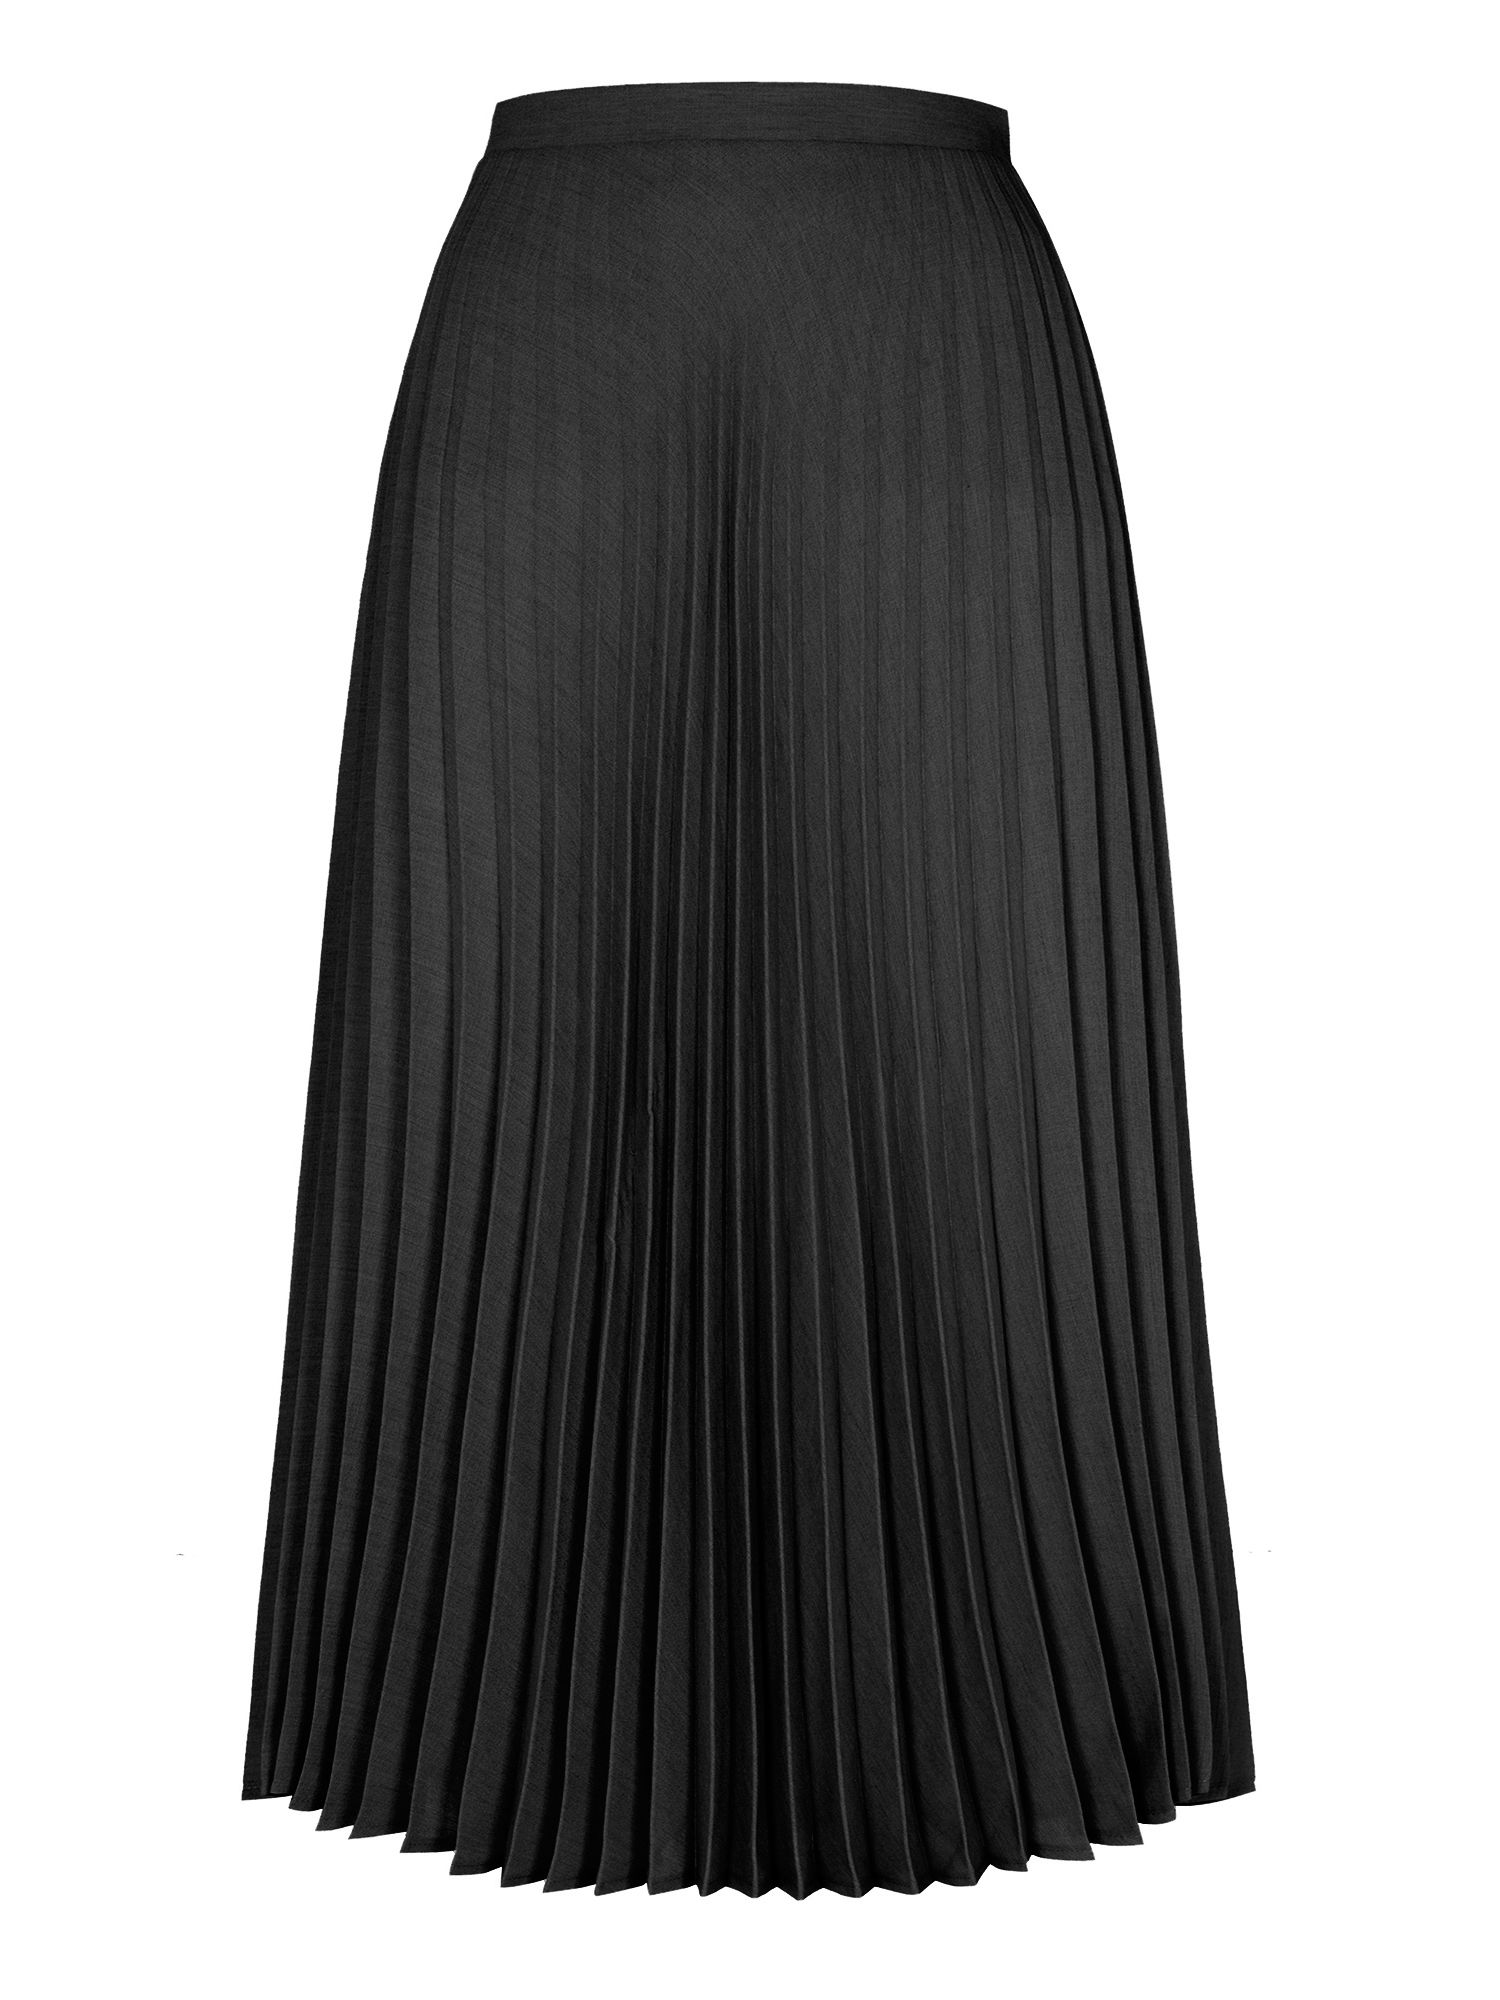 HotSquash Skirt with CleverTech, Black